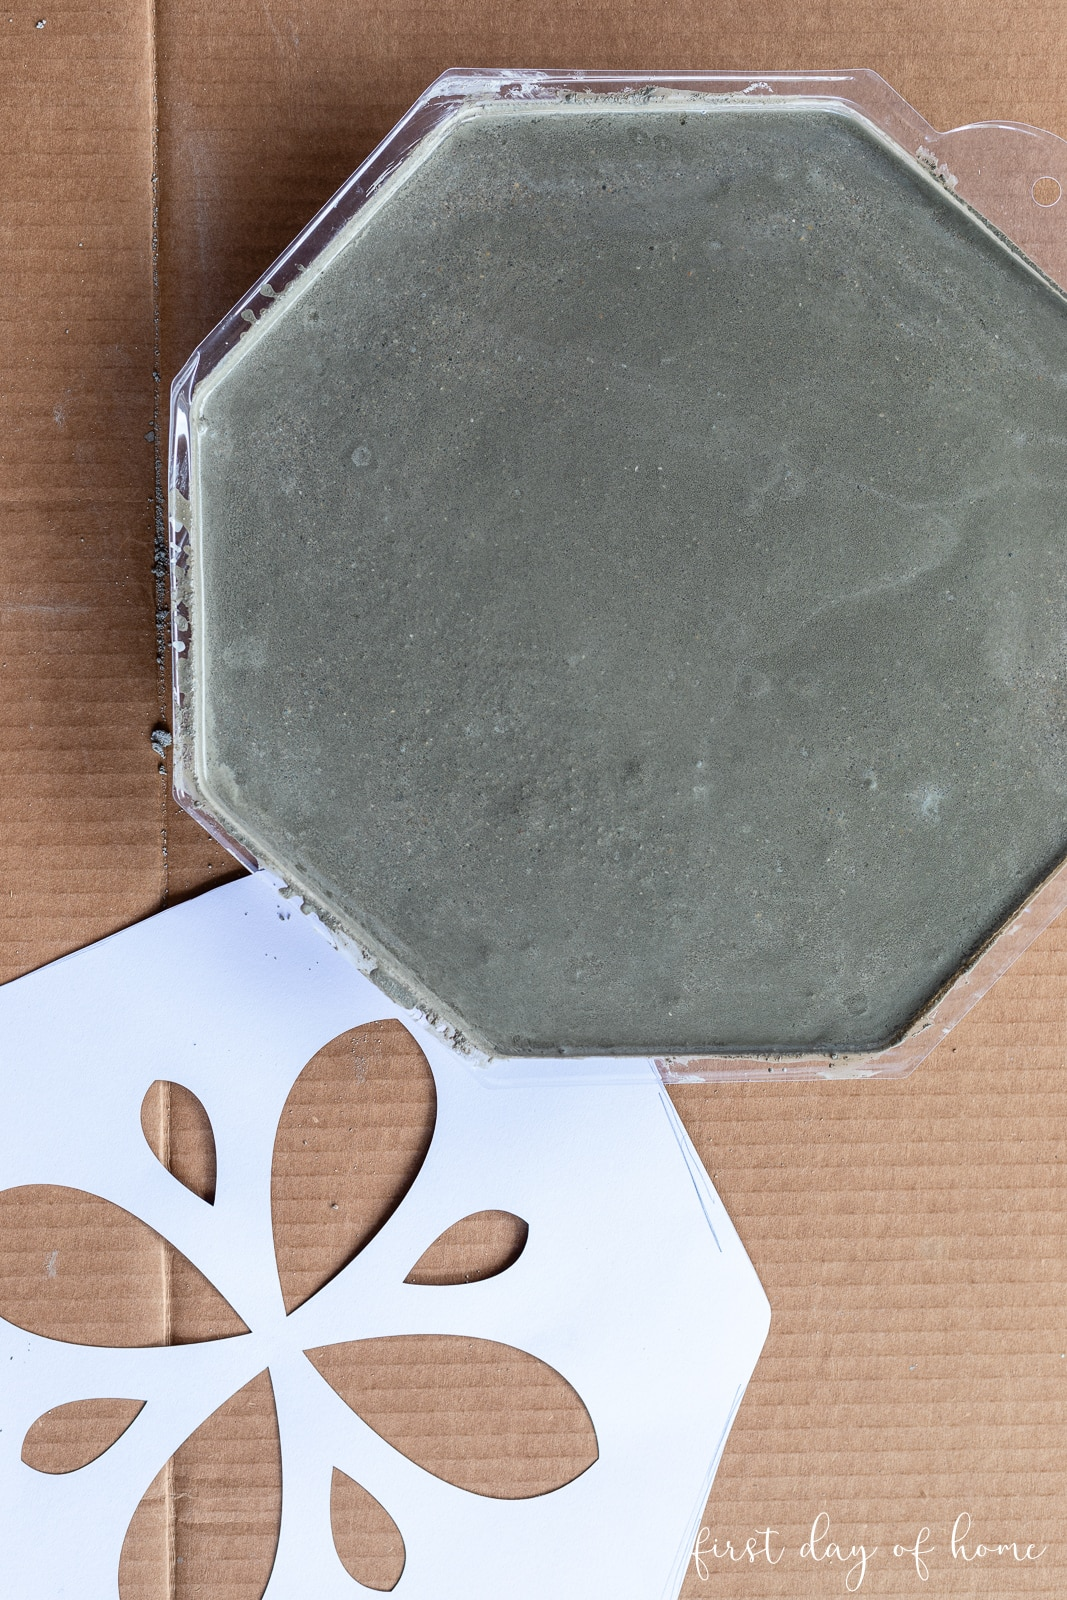 Stepping stone mold filled with concrete